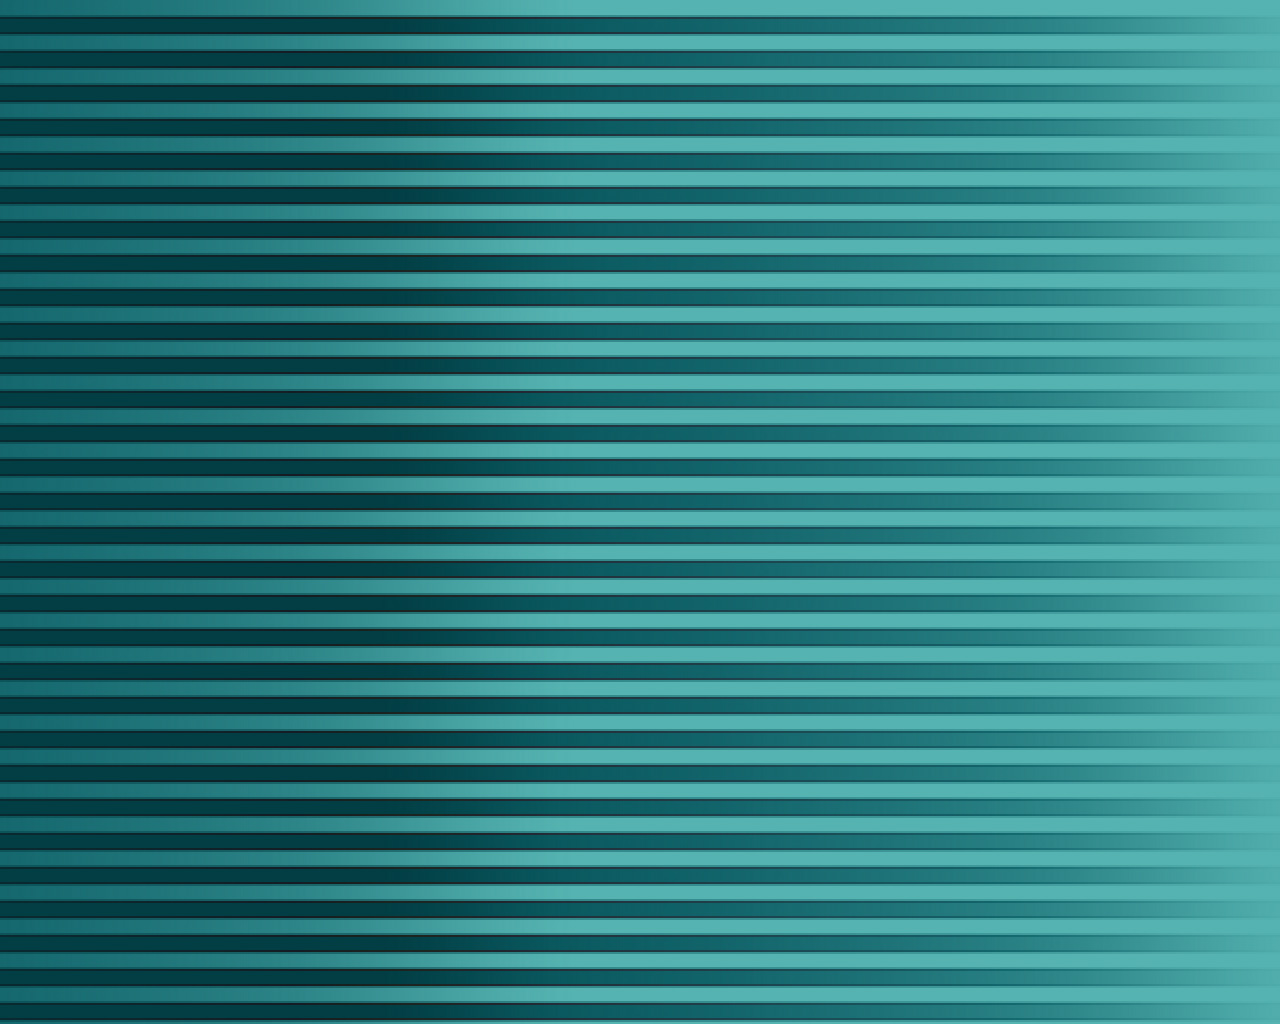 Sh yn design stripe pattern wallpaper teal stripe for Teal wallpaper